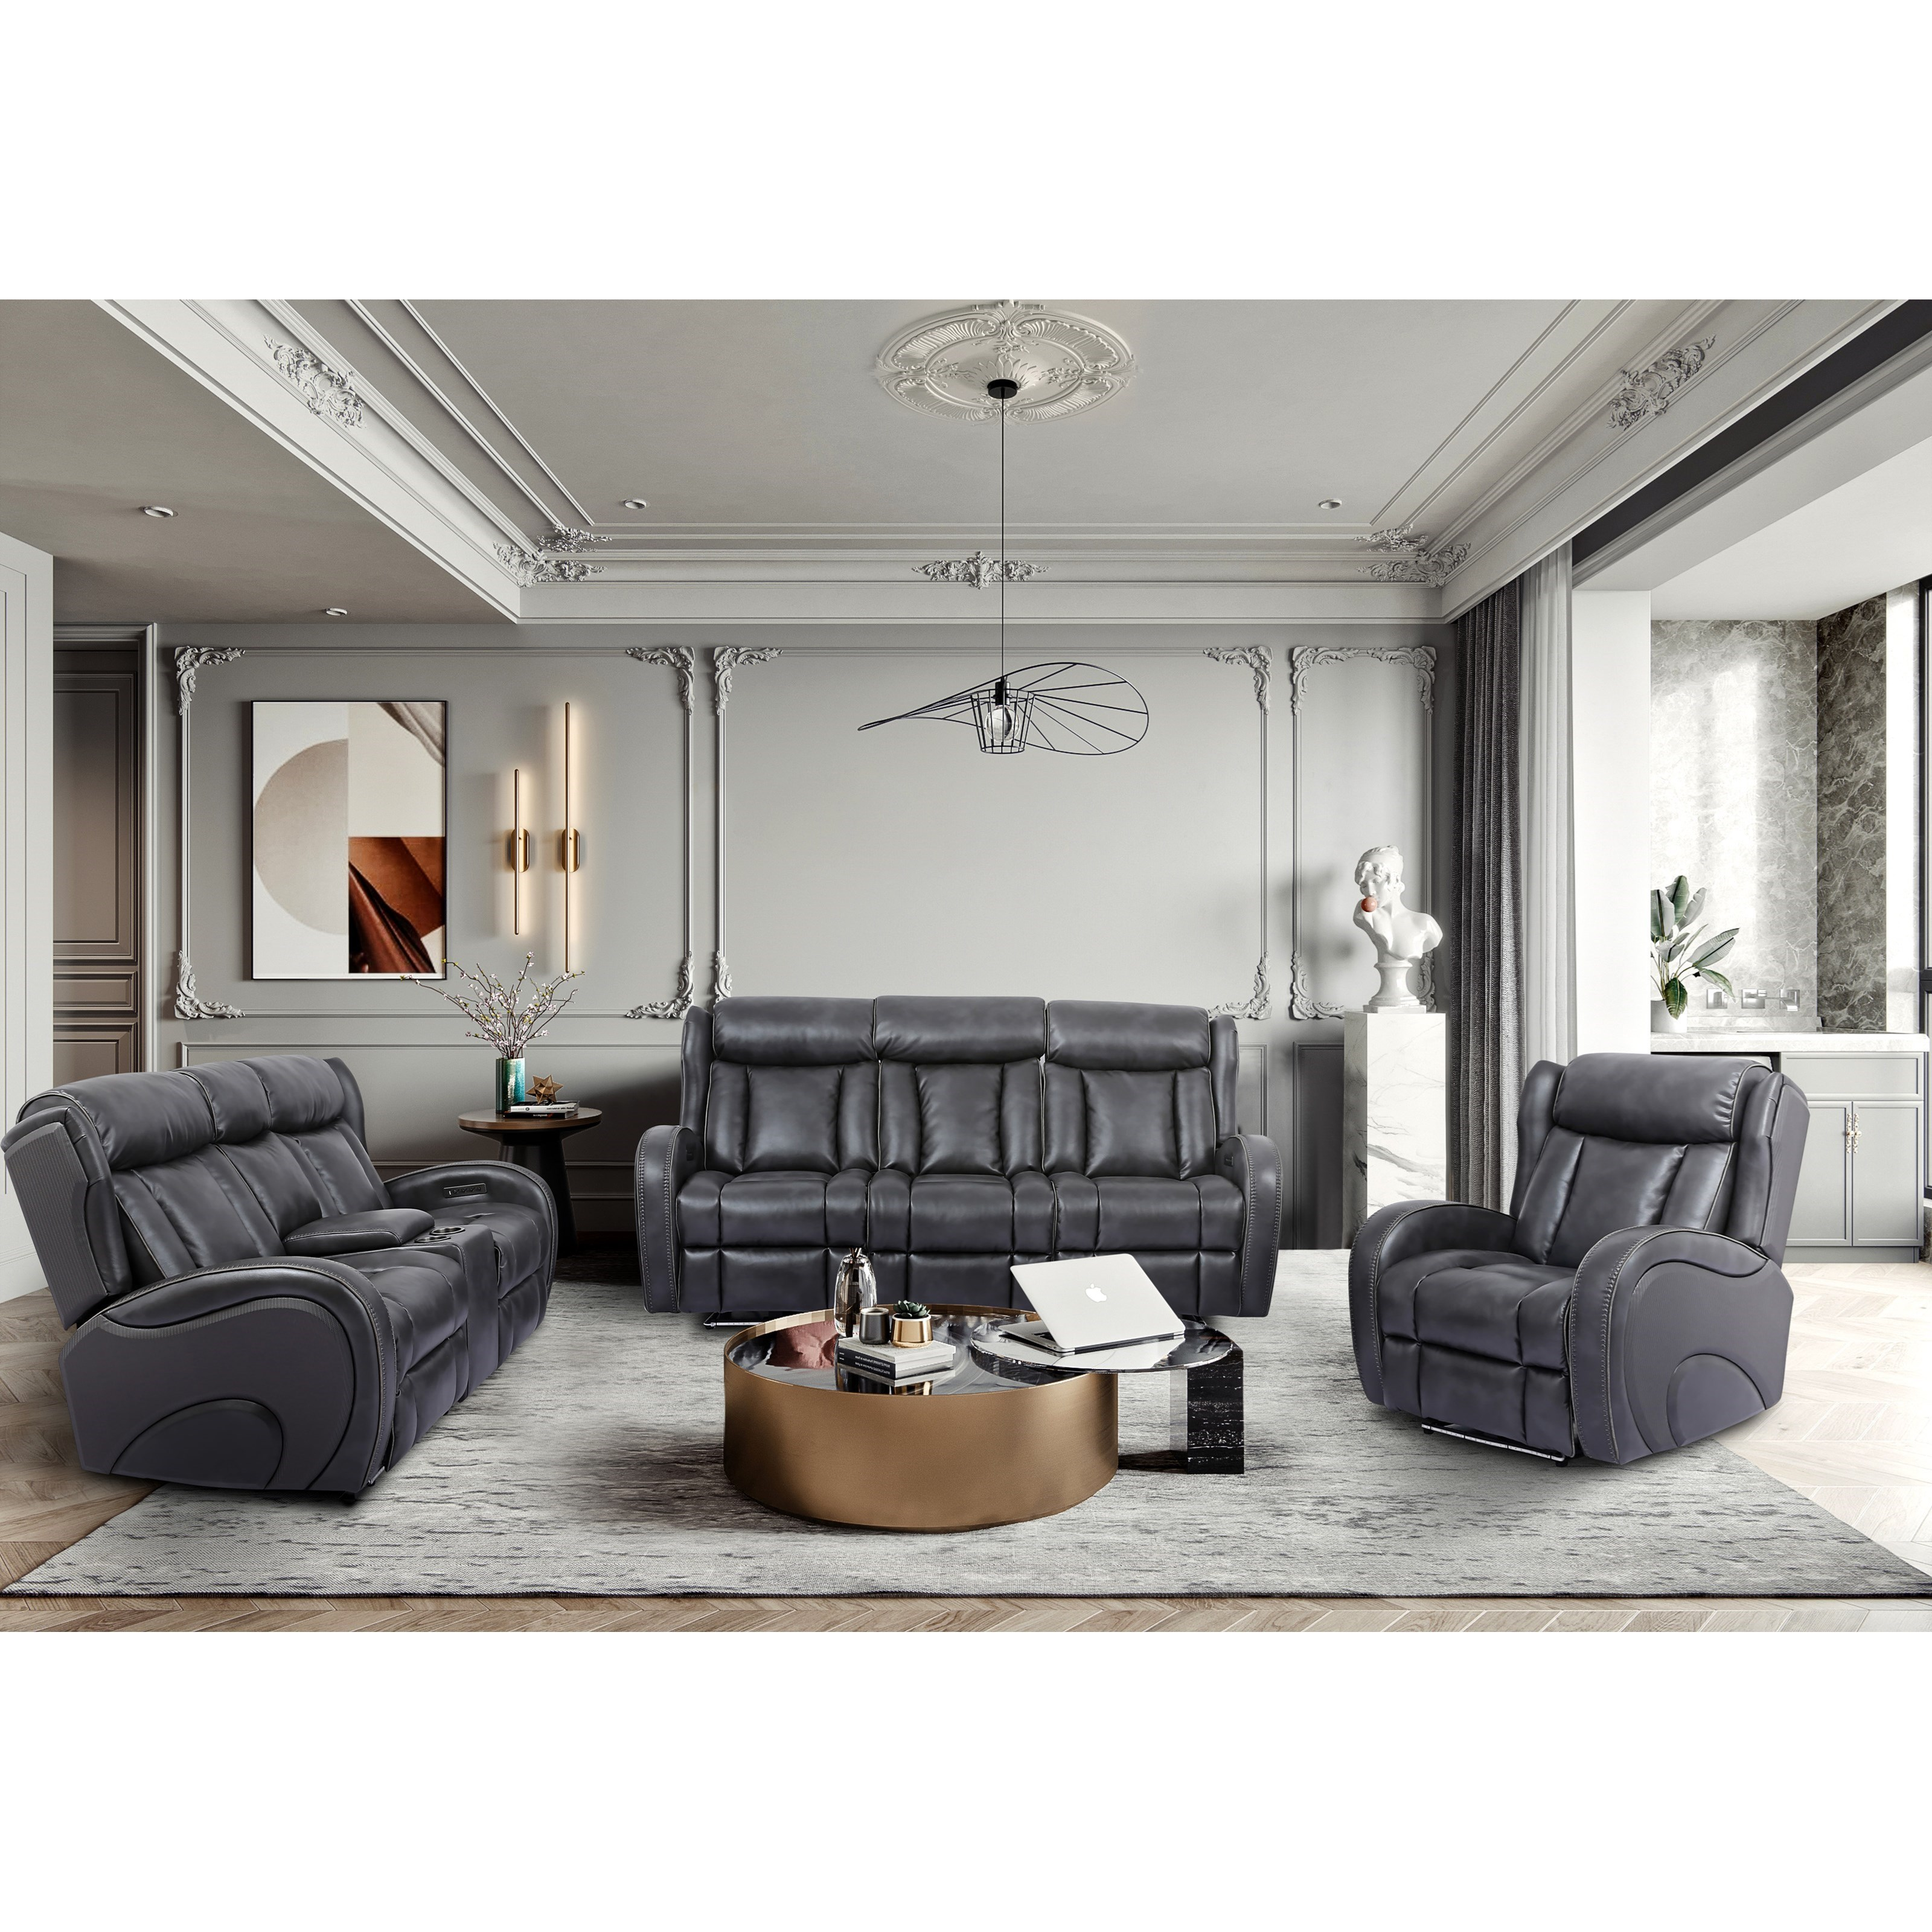 70083 Power Reclining Living Room Group by Cheers at Lagniappe Home Store